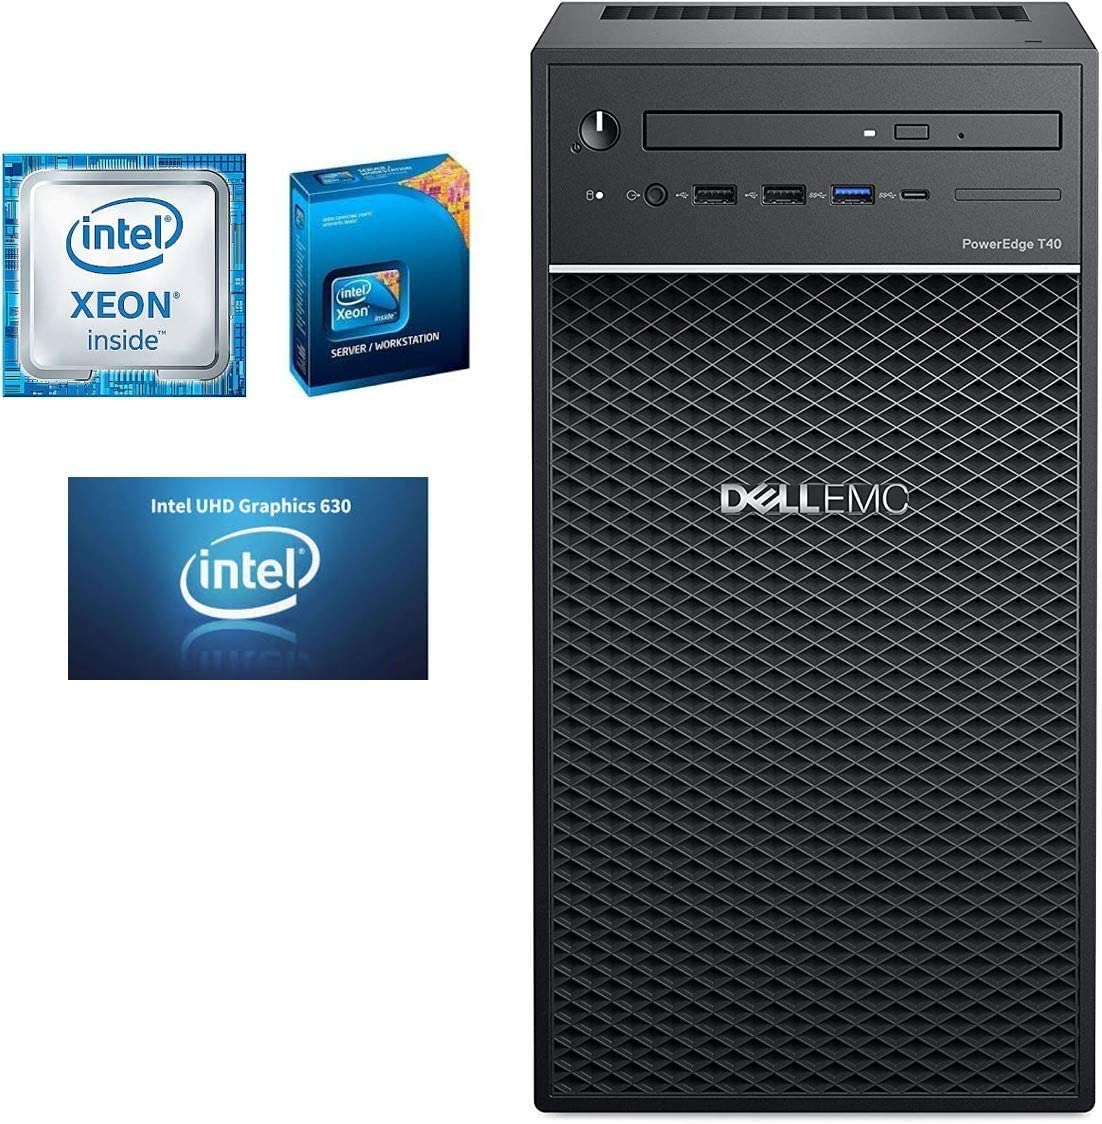 Dell PowerEdge T40 Server, BTX Intel Xeon E-2224G 3.5GHz, 8GB 2666MT/s DDR4, 1TB 7.2K RPM SATA